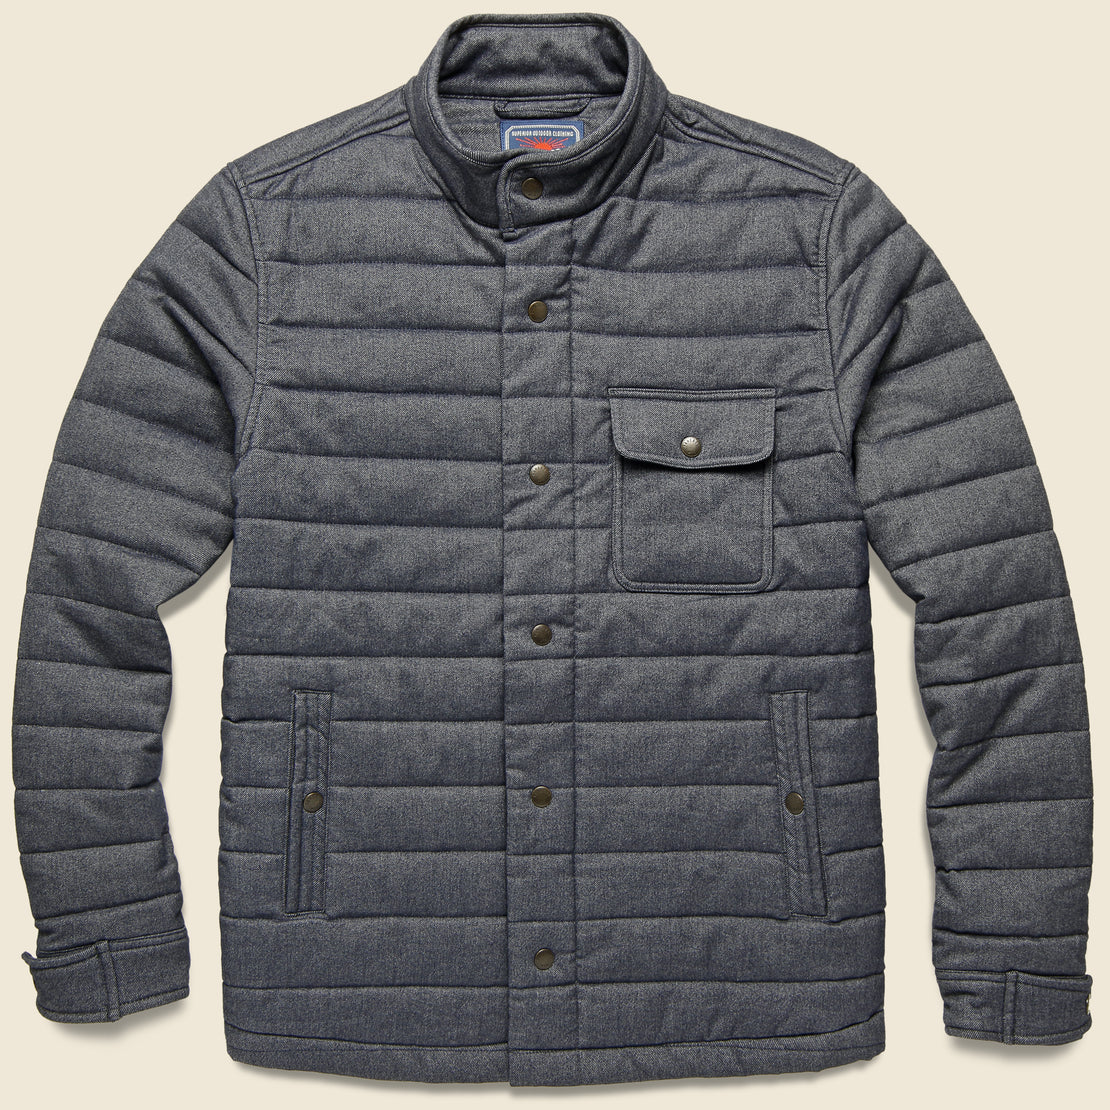 Faherty Teton Valley Jacket - Slate